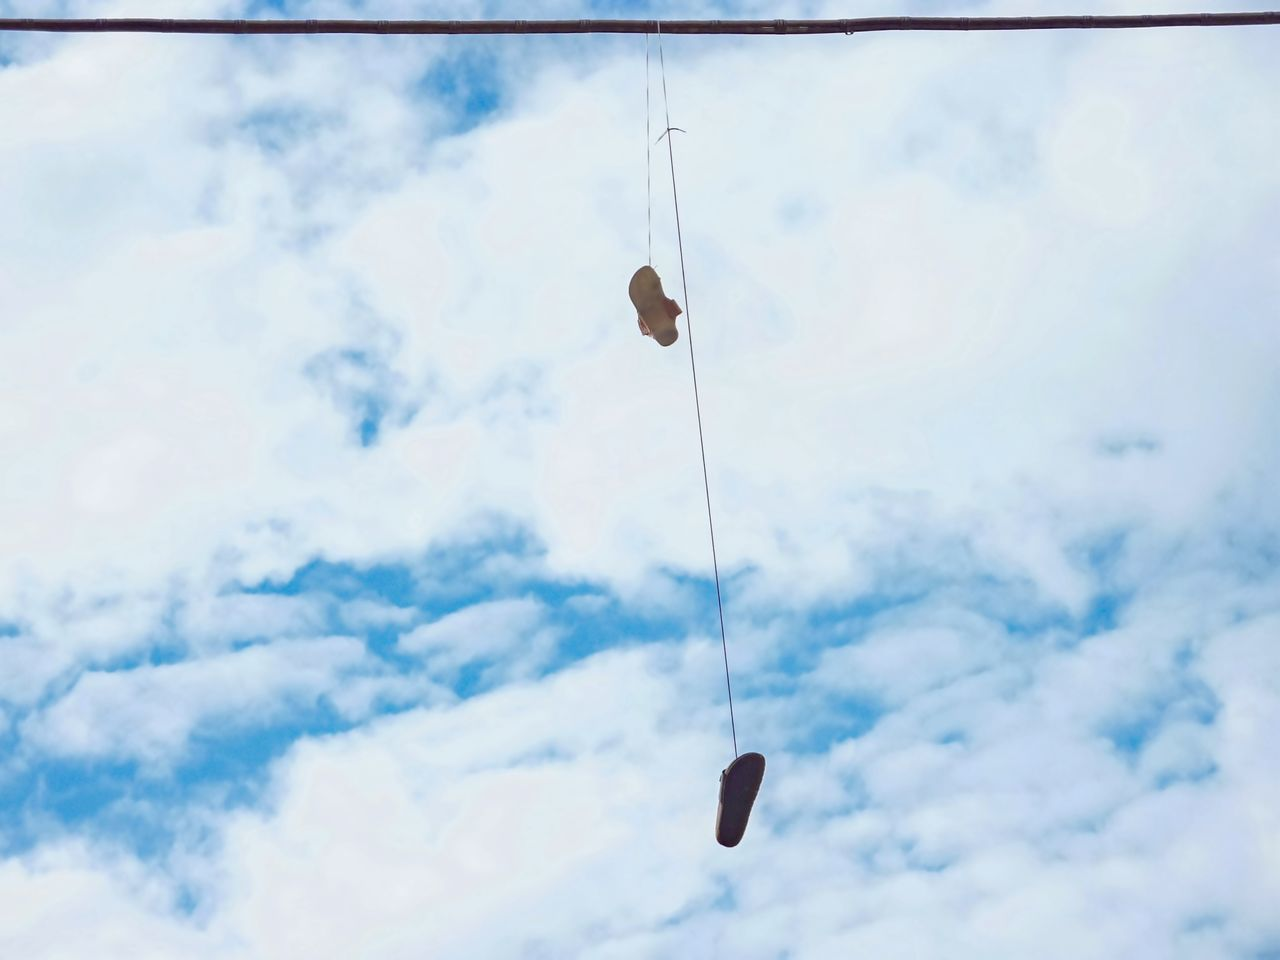 The game of hanging shoes... Cloud - Sky Hanging Hanging Around Hanging Out Hanging Shoe Low Angle View No People Outdoors Rope Shoes Sky Strange Game Streetphotography